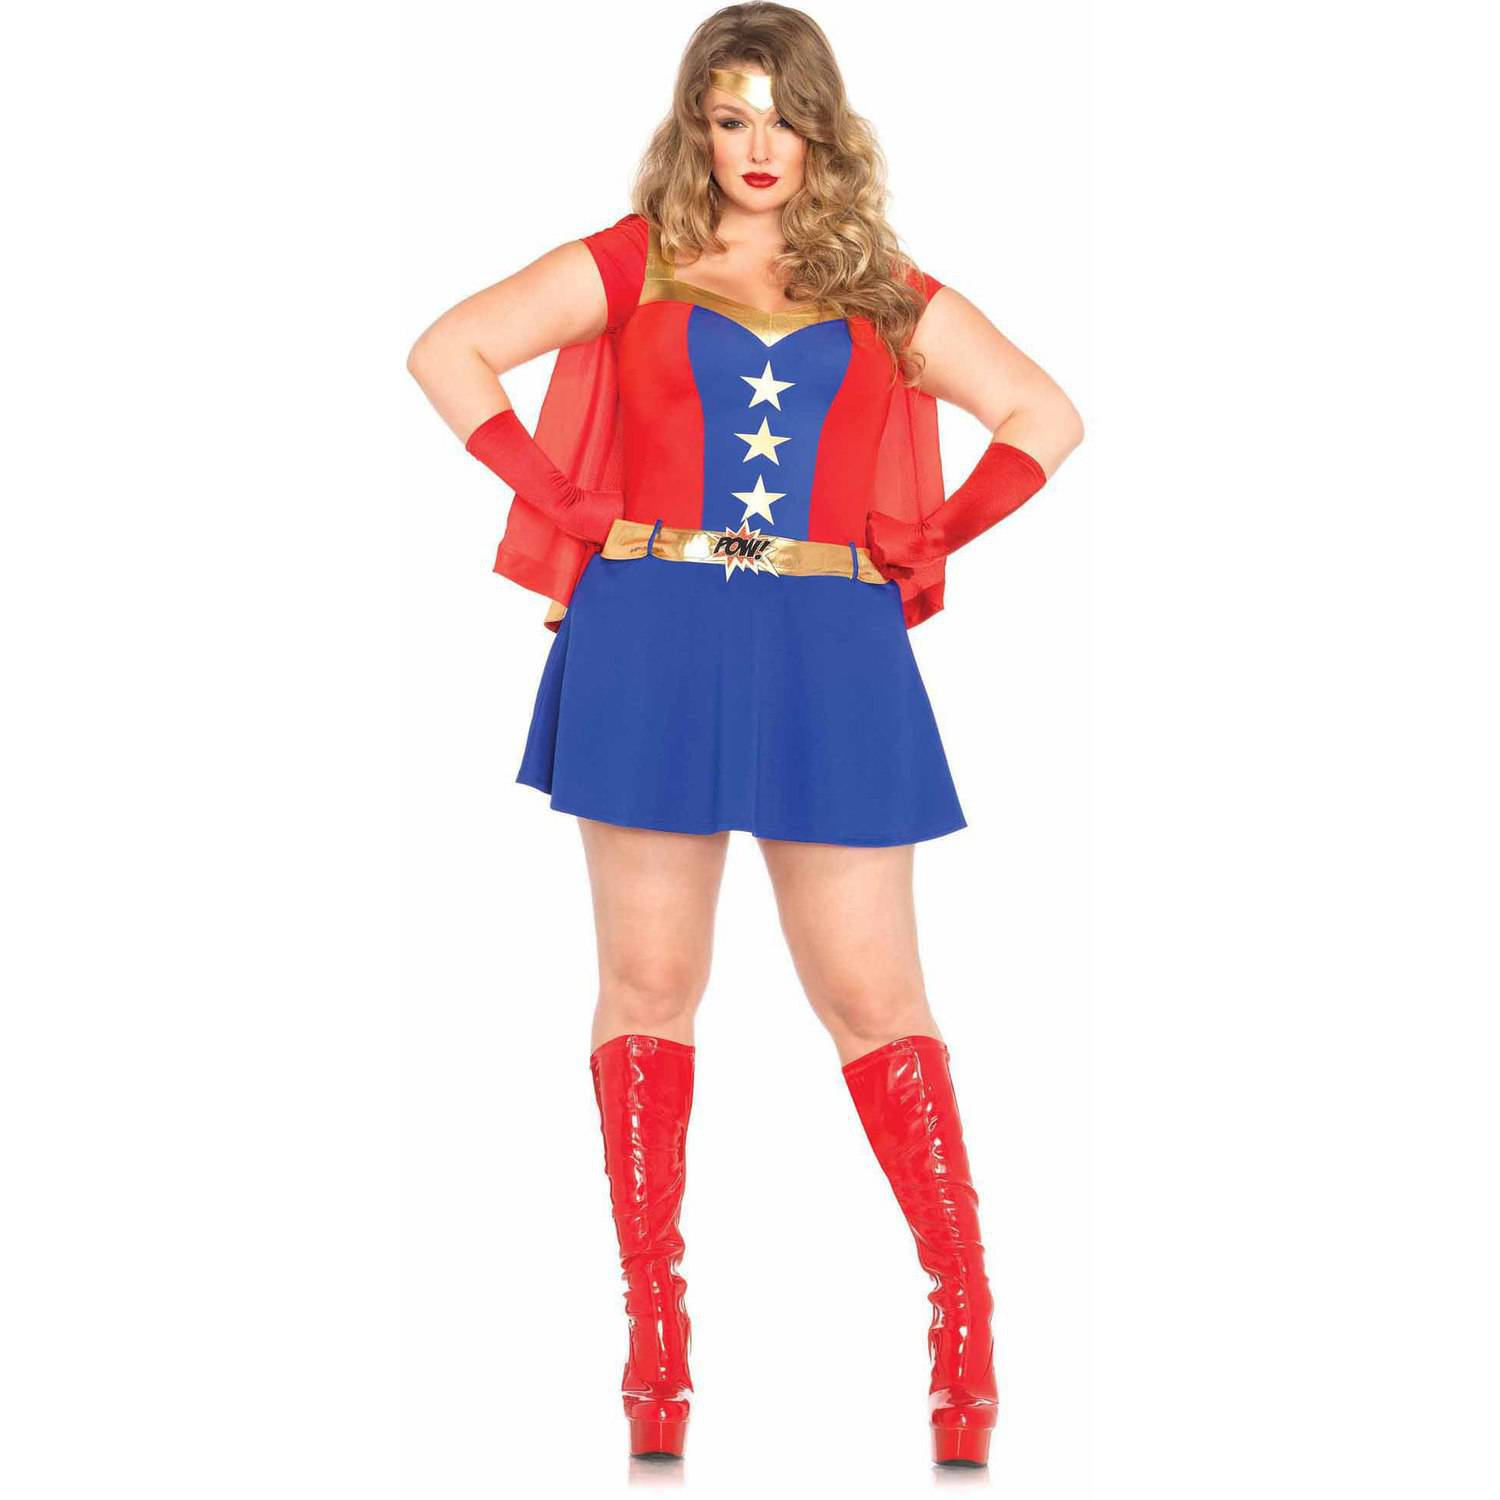 Leg Avenue Plus Size 3-Piece Comic Book Girl Adult Halloween Costume - Walmart.com  sc 1 st  Walmart & Leg Avenue Plus Size 3-Piece Comic Book Girl Adult Halloween Costume ...